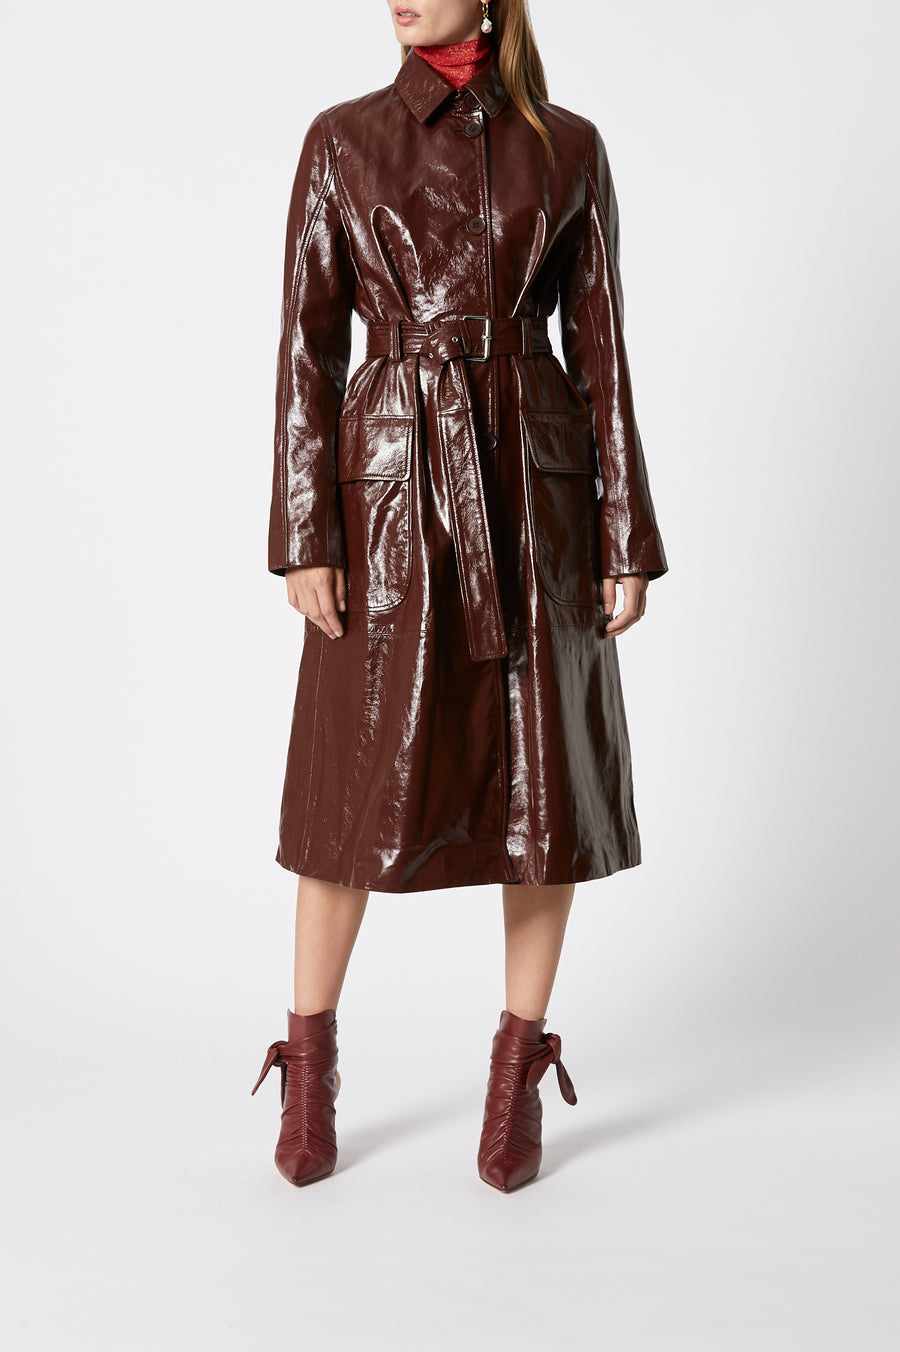 Leather Trench, 100% leather, loose fit, comes with belt, has a collar, long sleeves, button fastenings through the front, Color Cocoa